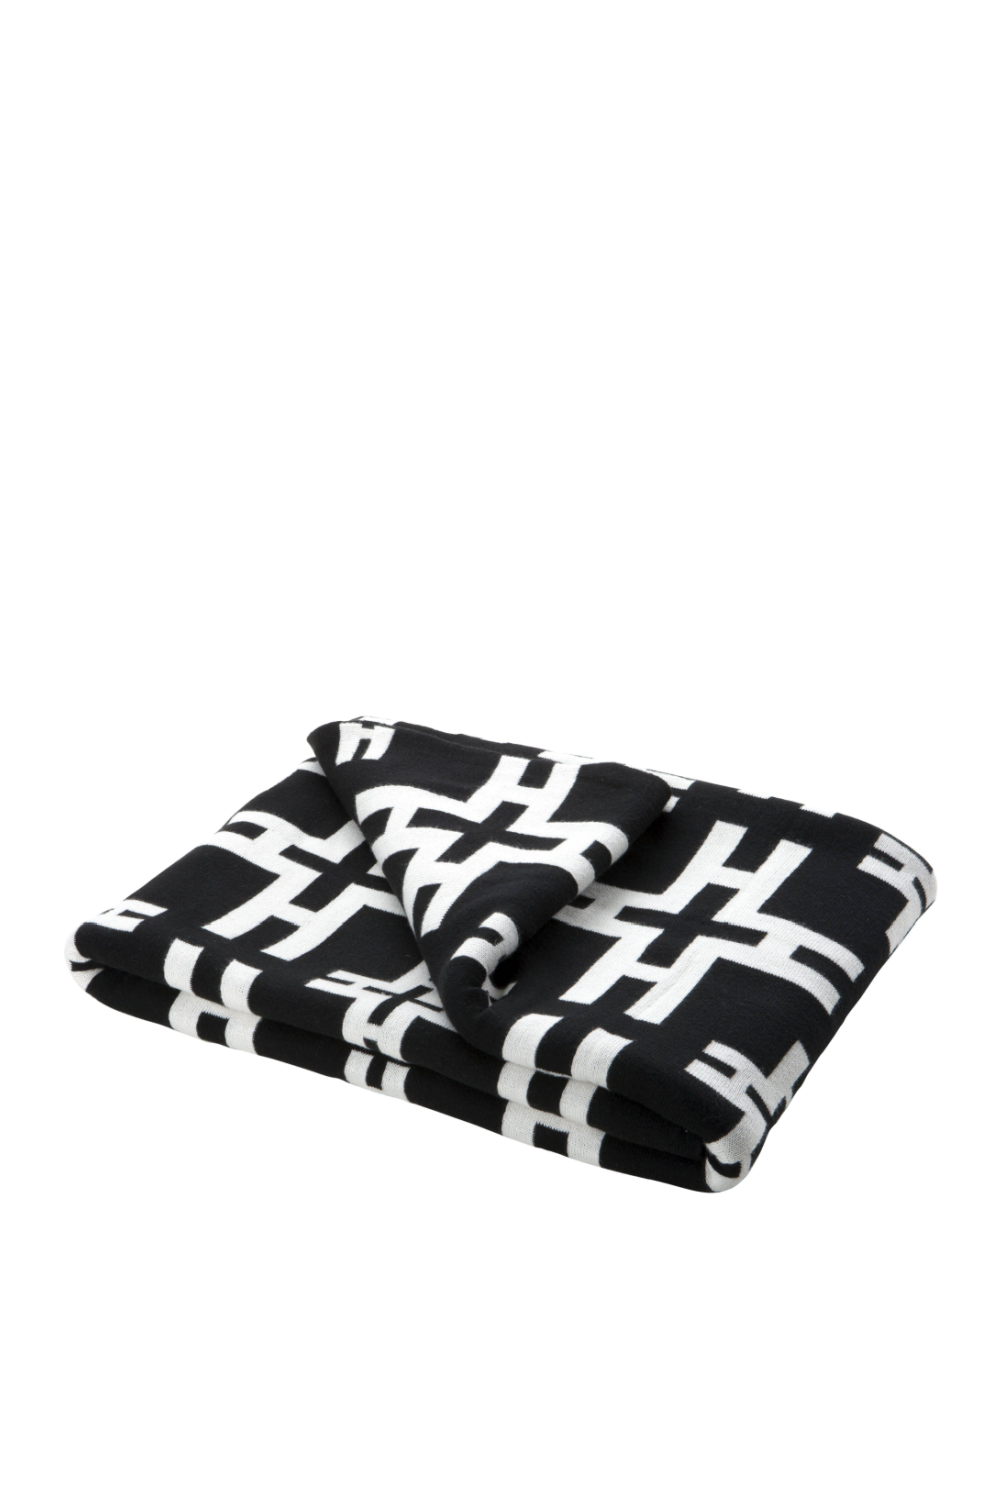 Black & White Plaid | Eichholtz Hicks | #1 Eichholtz Online Retailer